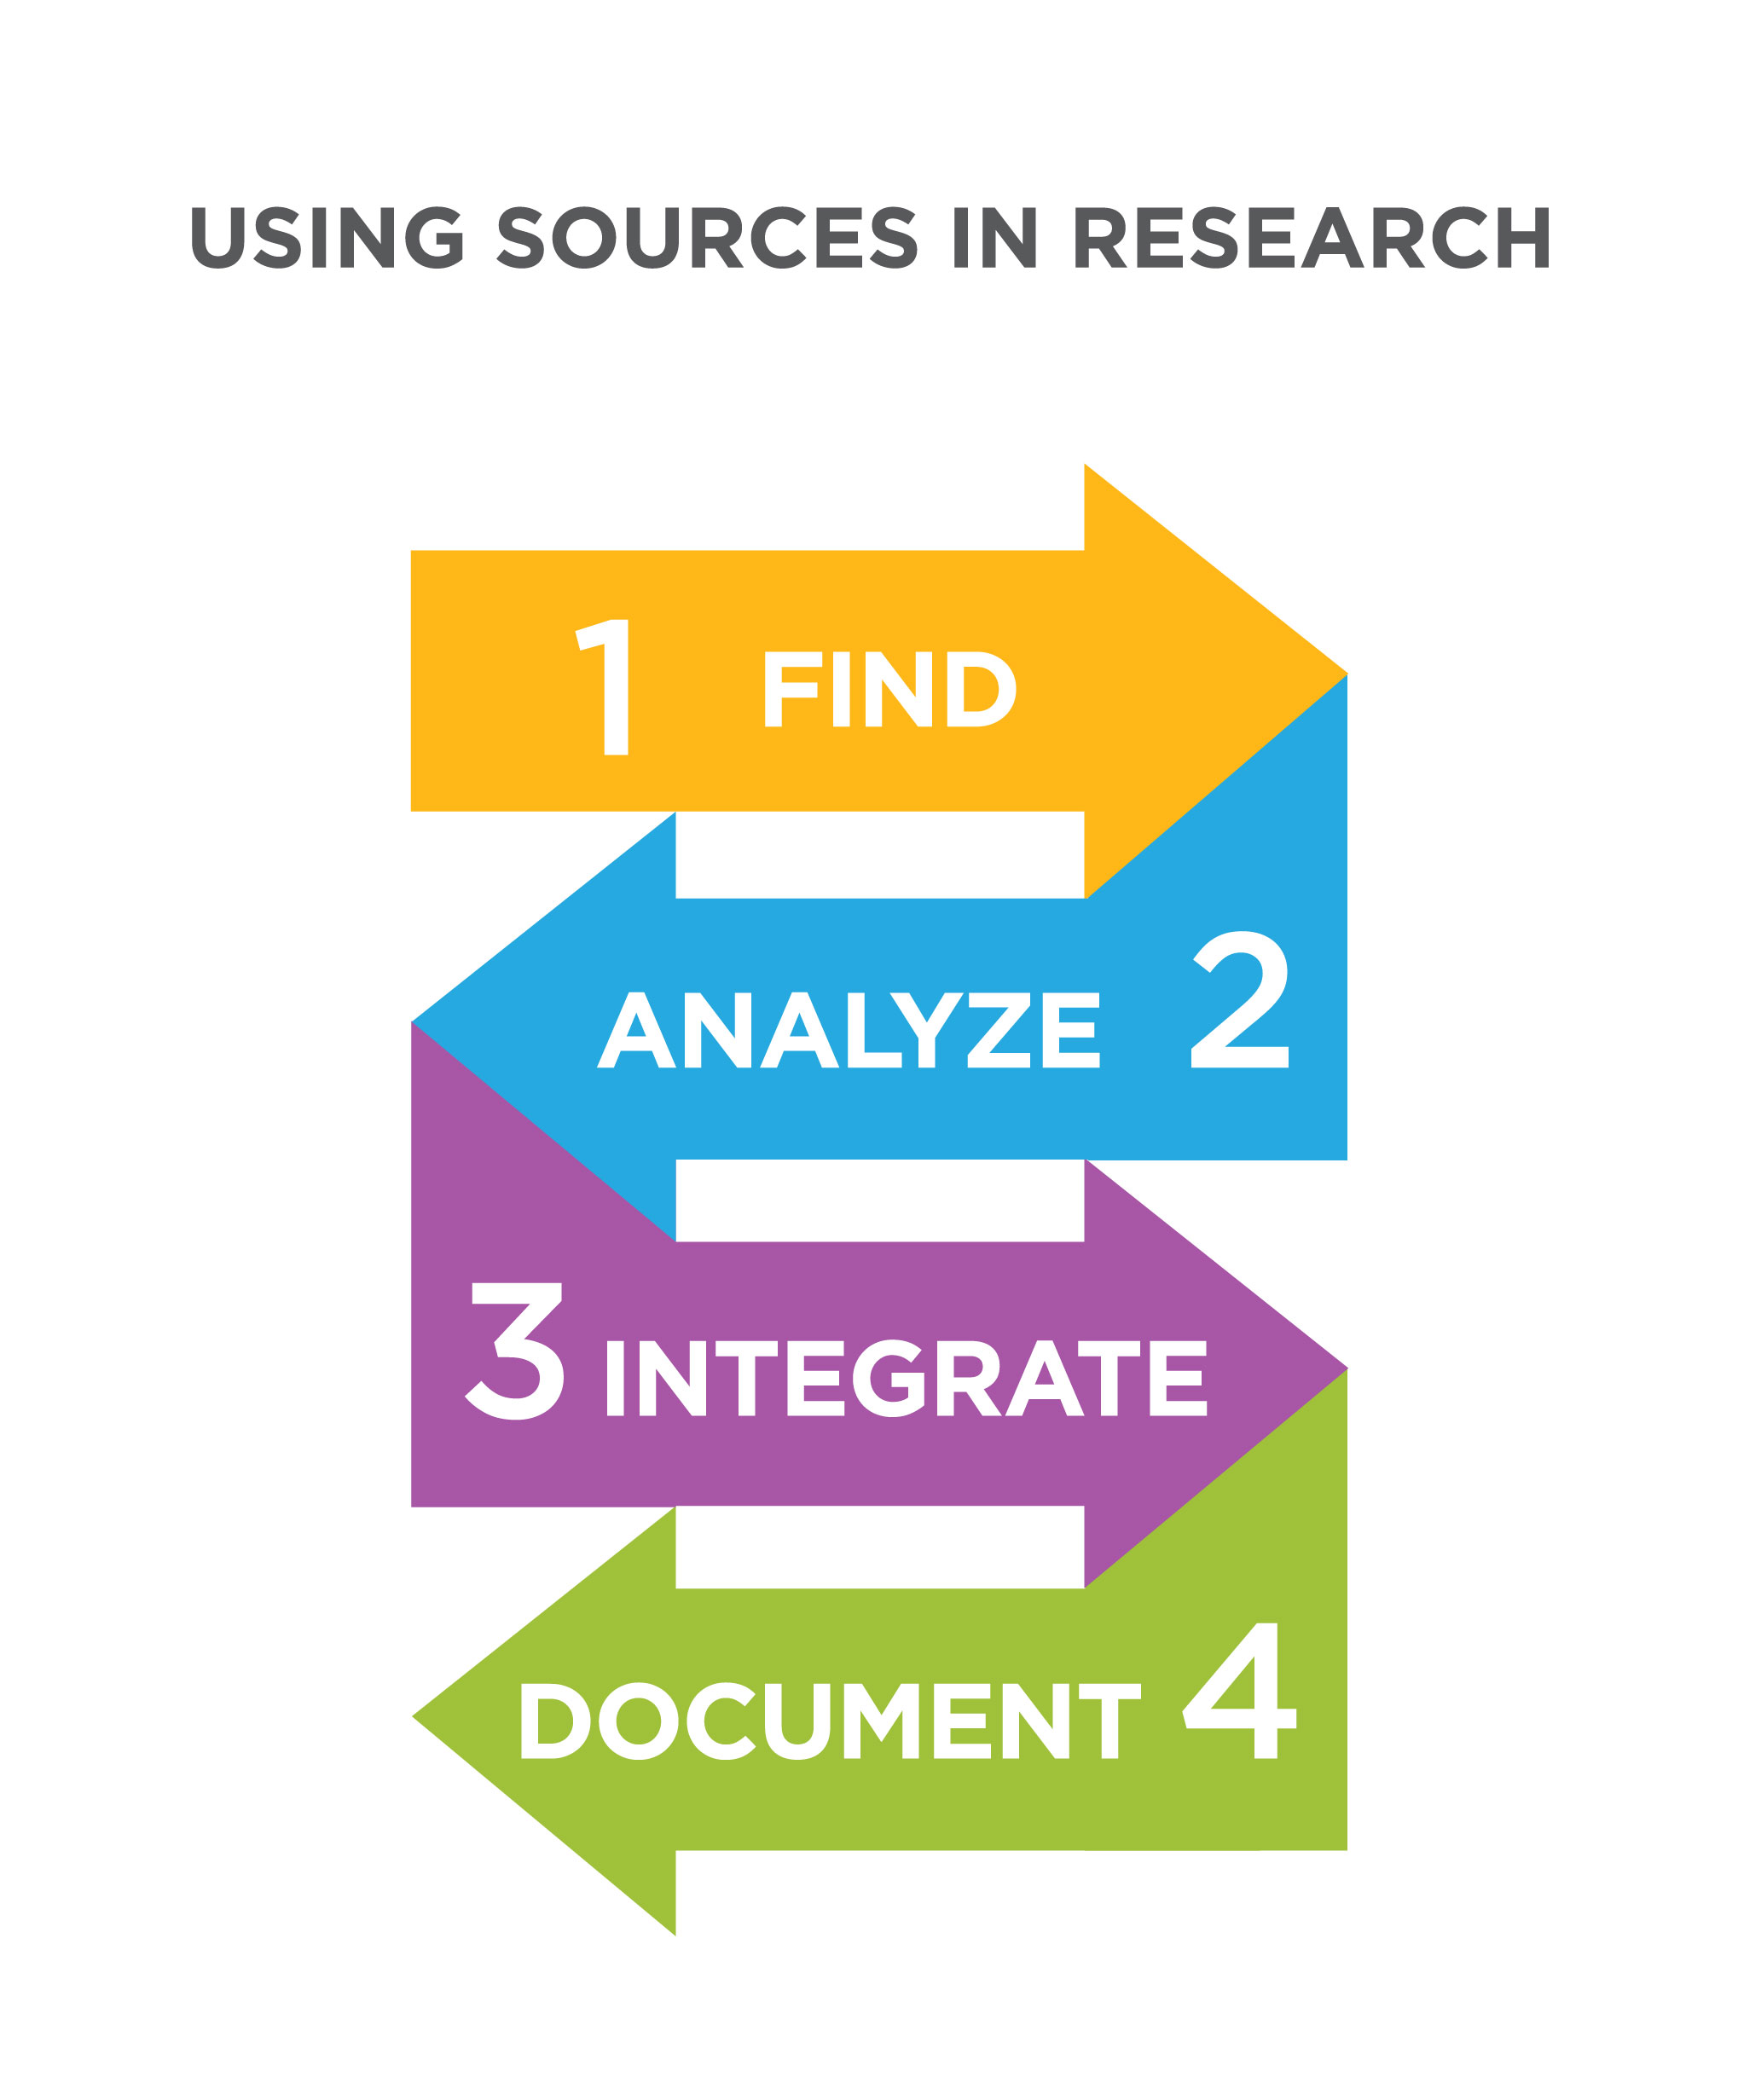 Graphic showing the need to find, analyze, integrate, and document sources in research.